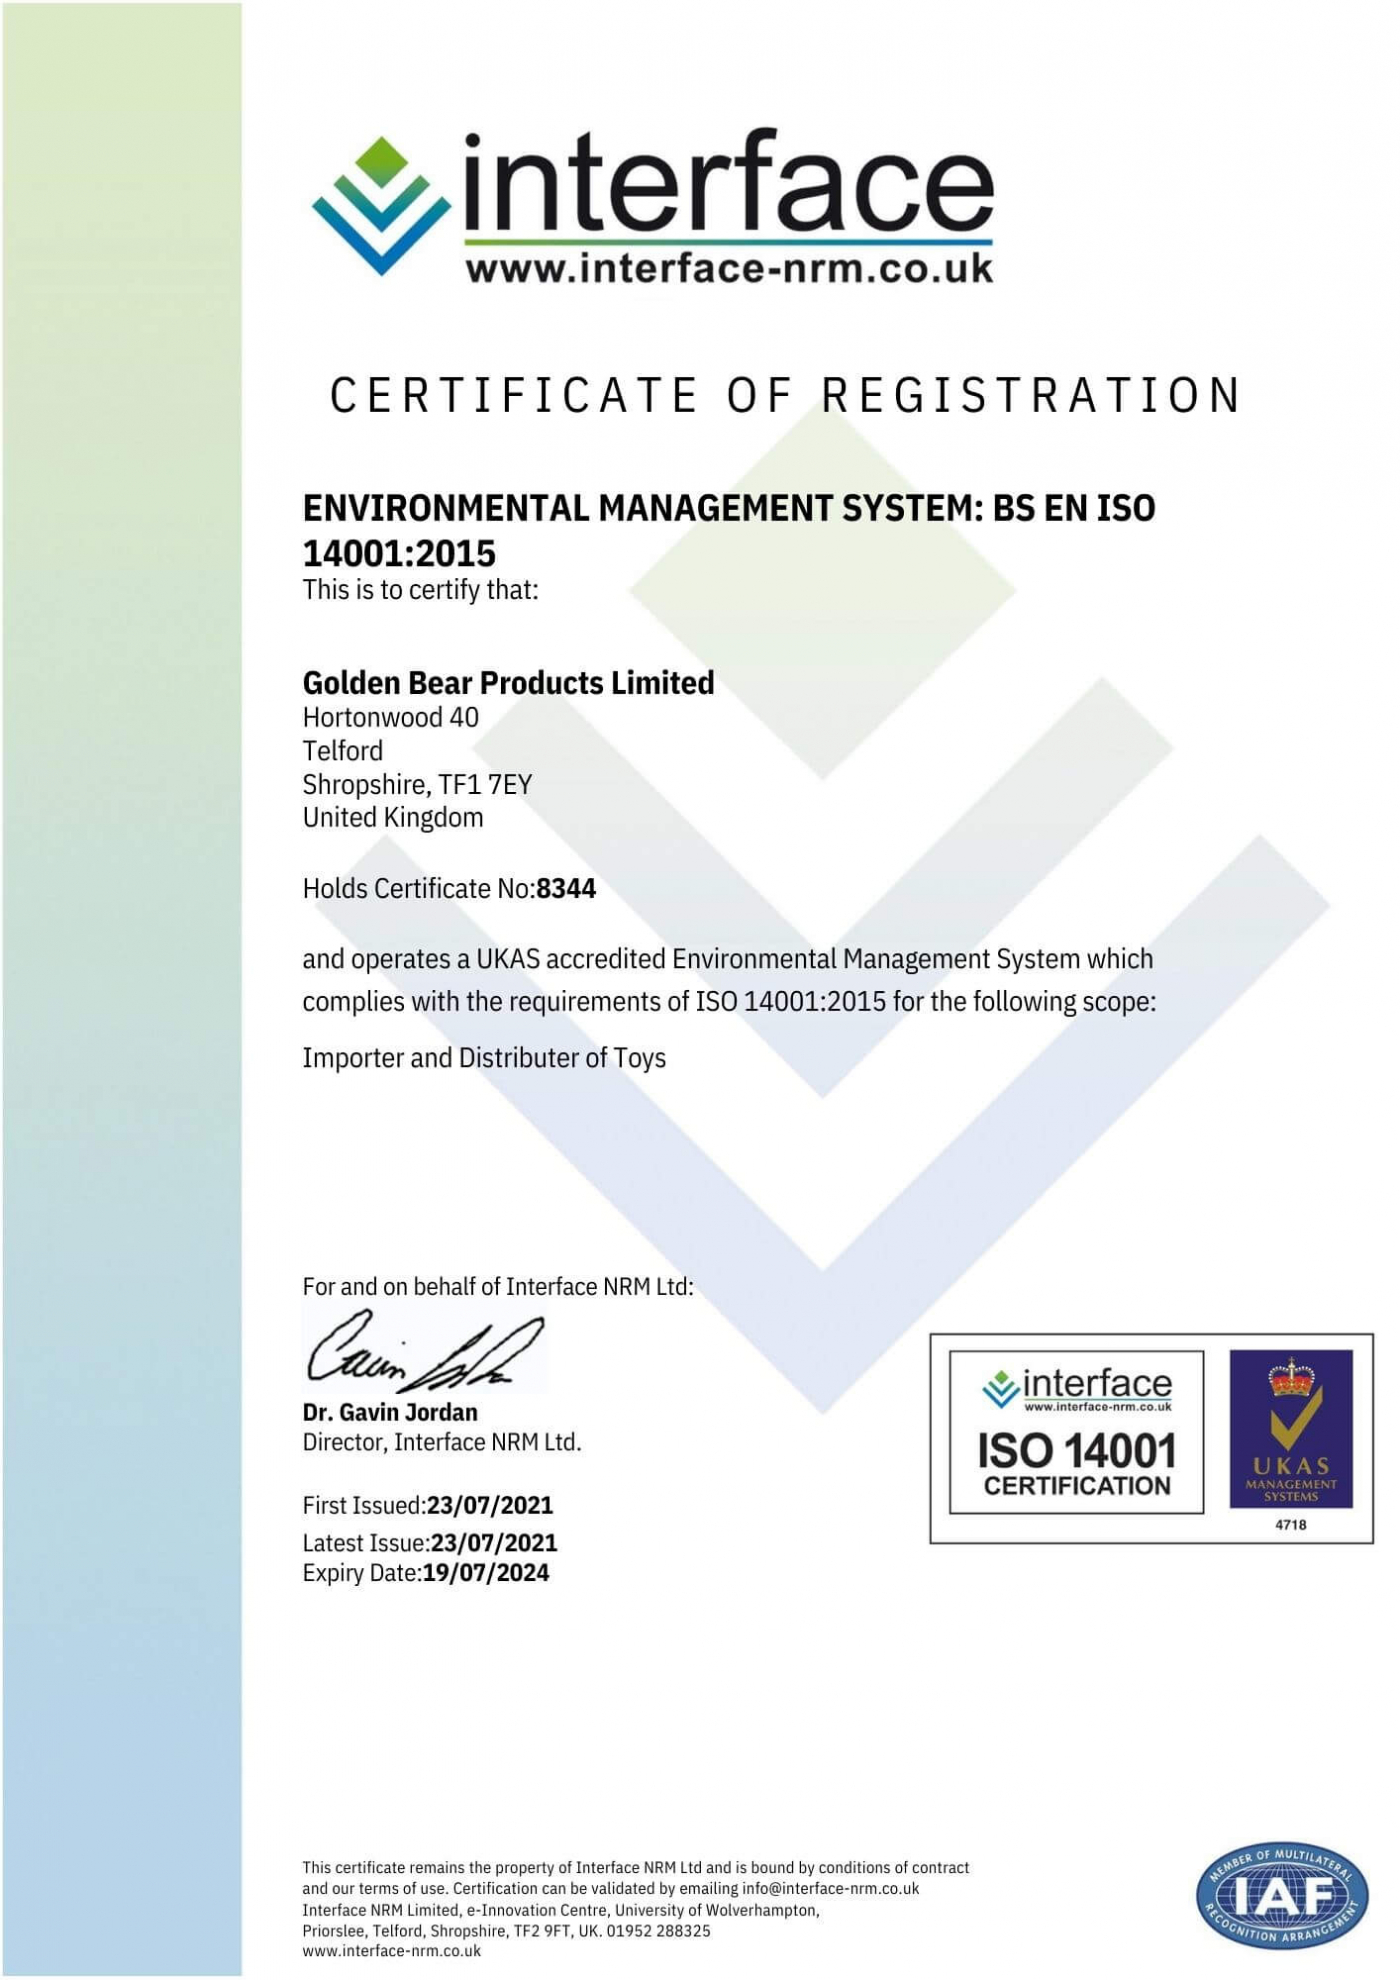 Golden Bear Products Limited UKAS ISO 14001 Certificate - 8344 (ID 7662).pdf (1)